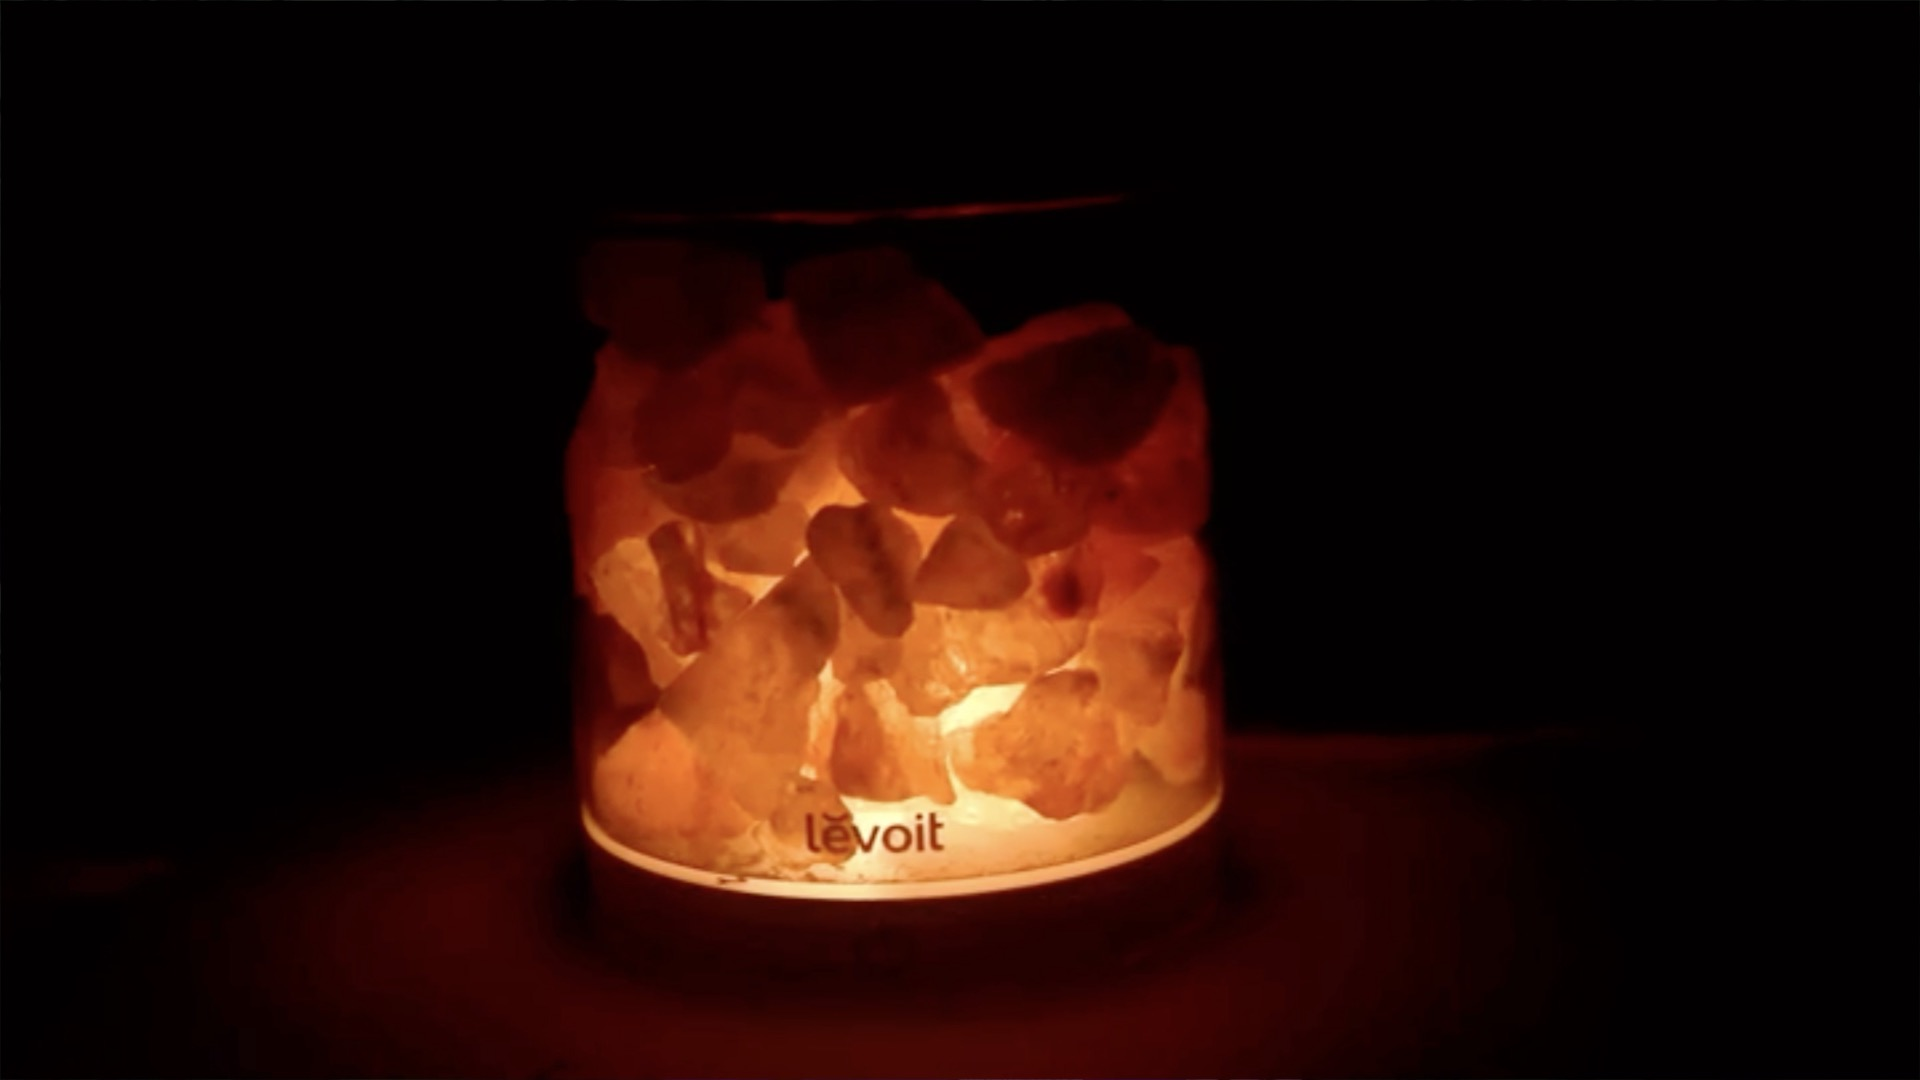 Himalayan Salt Lamp Help You Sleep : Can this USD 25 lamp fight allergies and purify the air? 9news.com